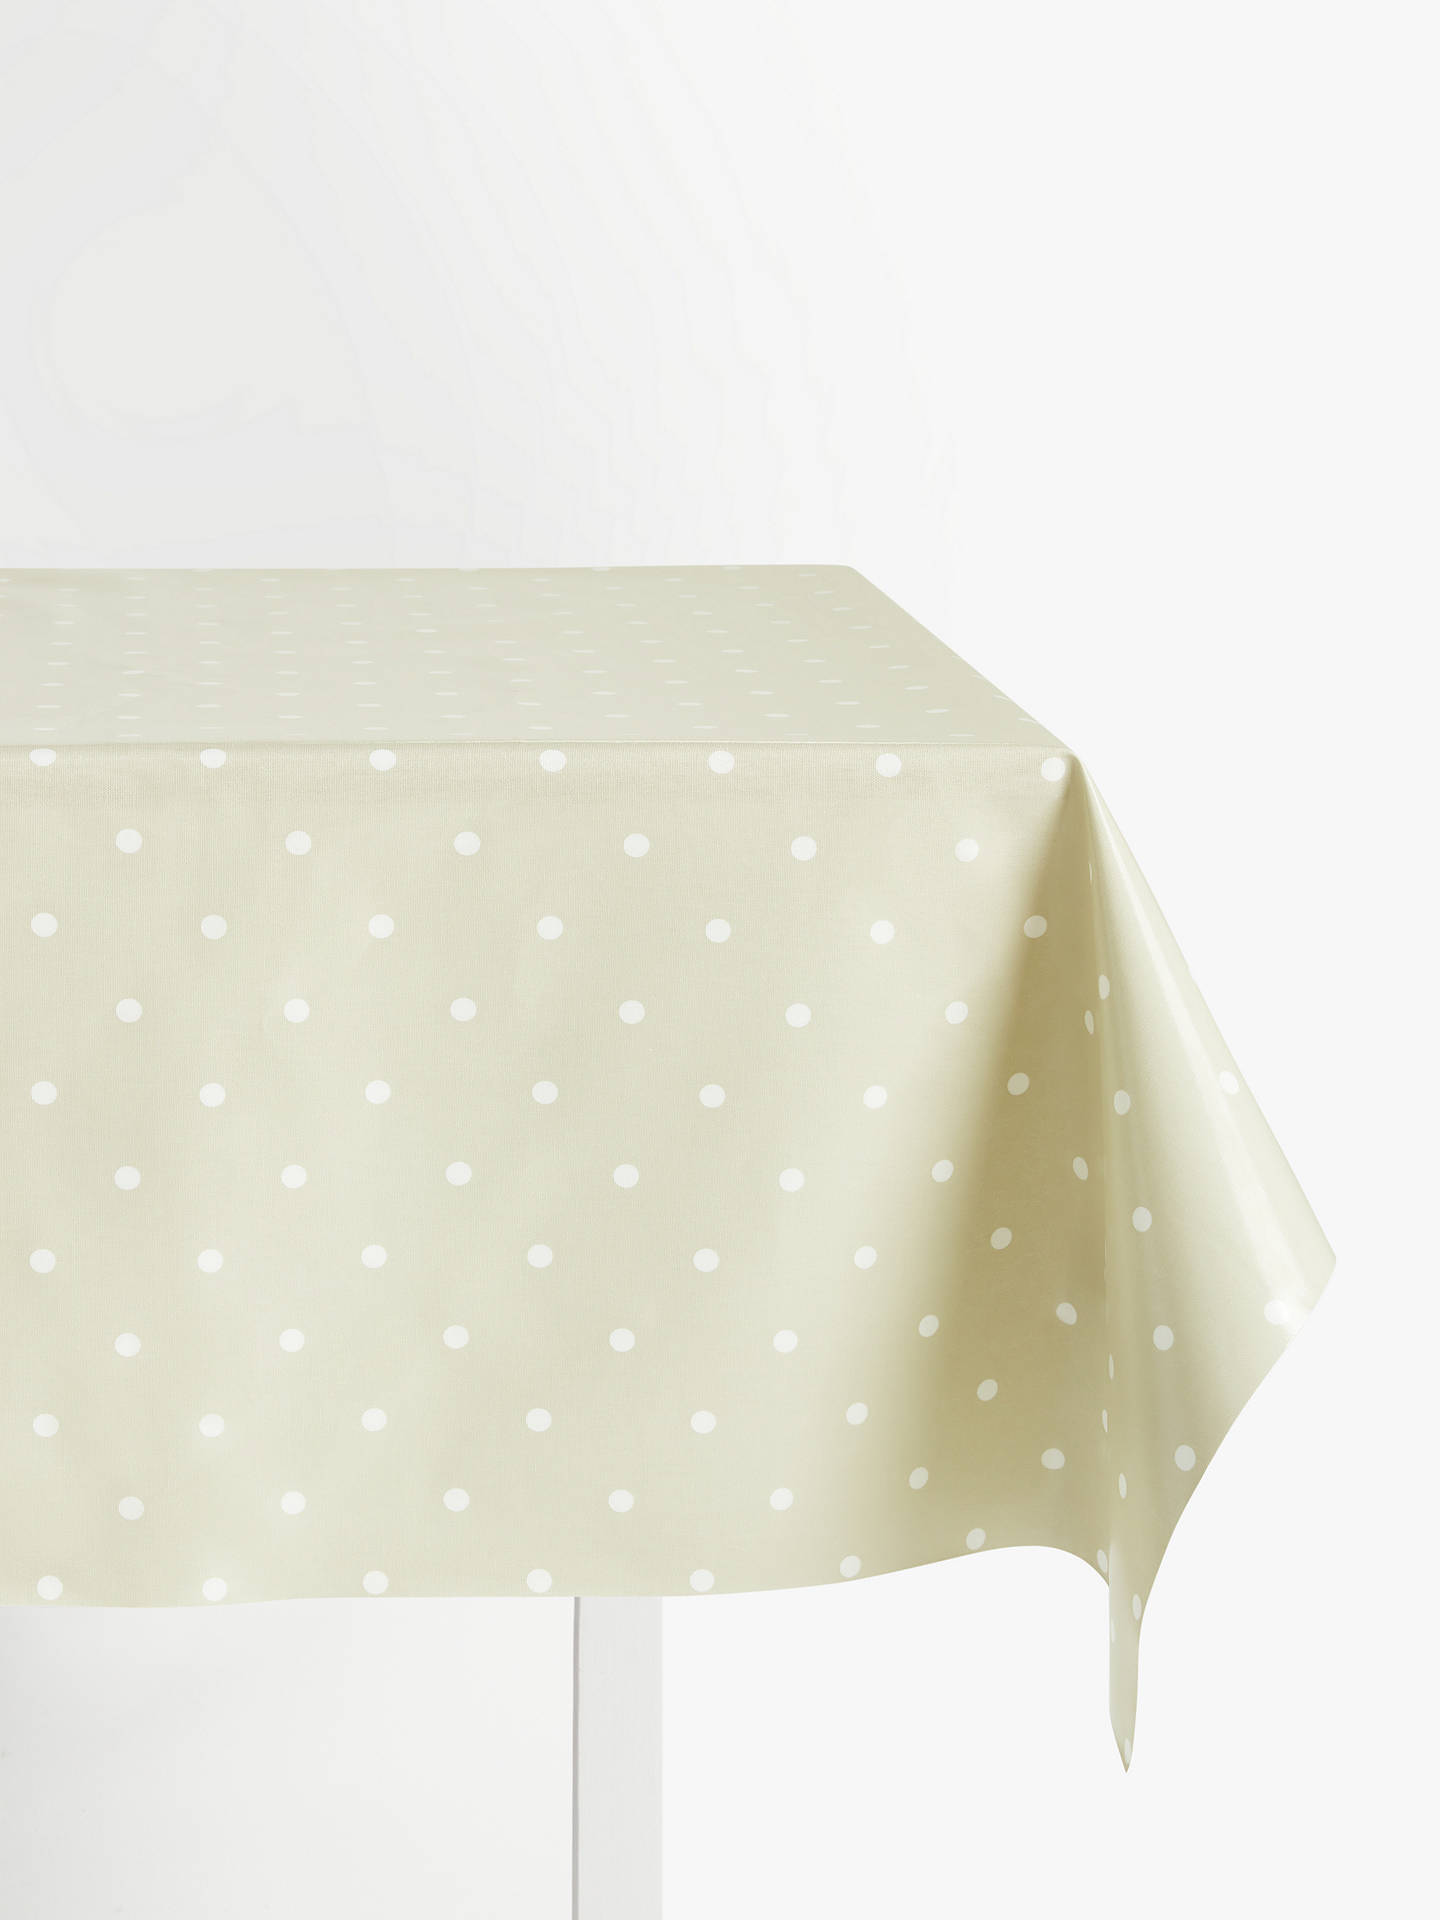 BuyJohn Lewis & Partners New Dots PVC Tablecloth Fabric, Mushroom Online at johnlewis.com